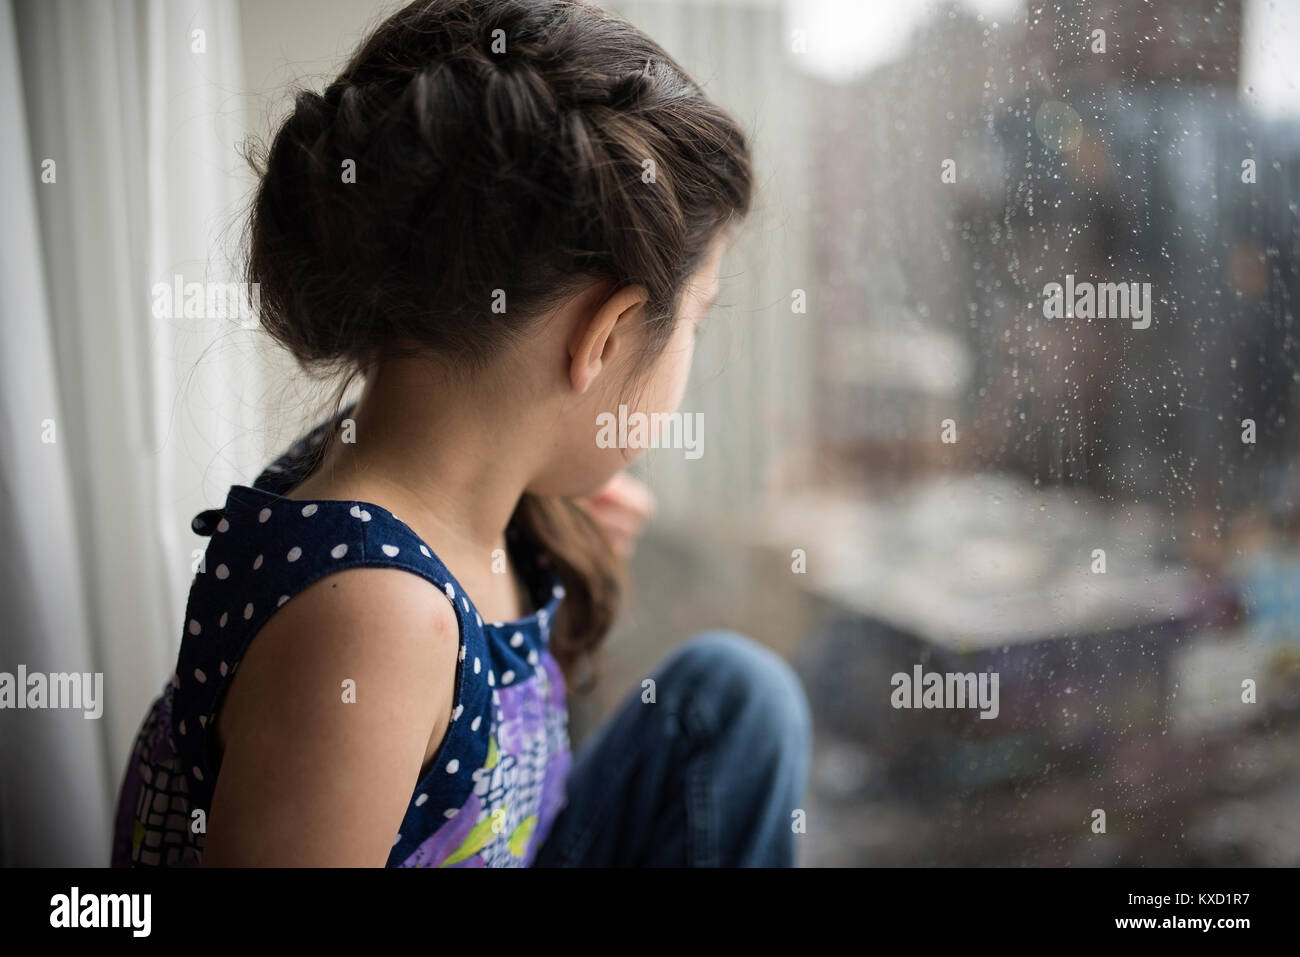 Thoughtful girl looking though wet window at home - Stock Image